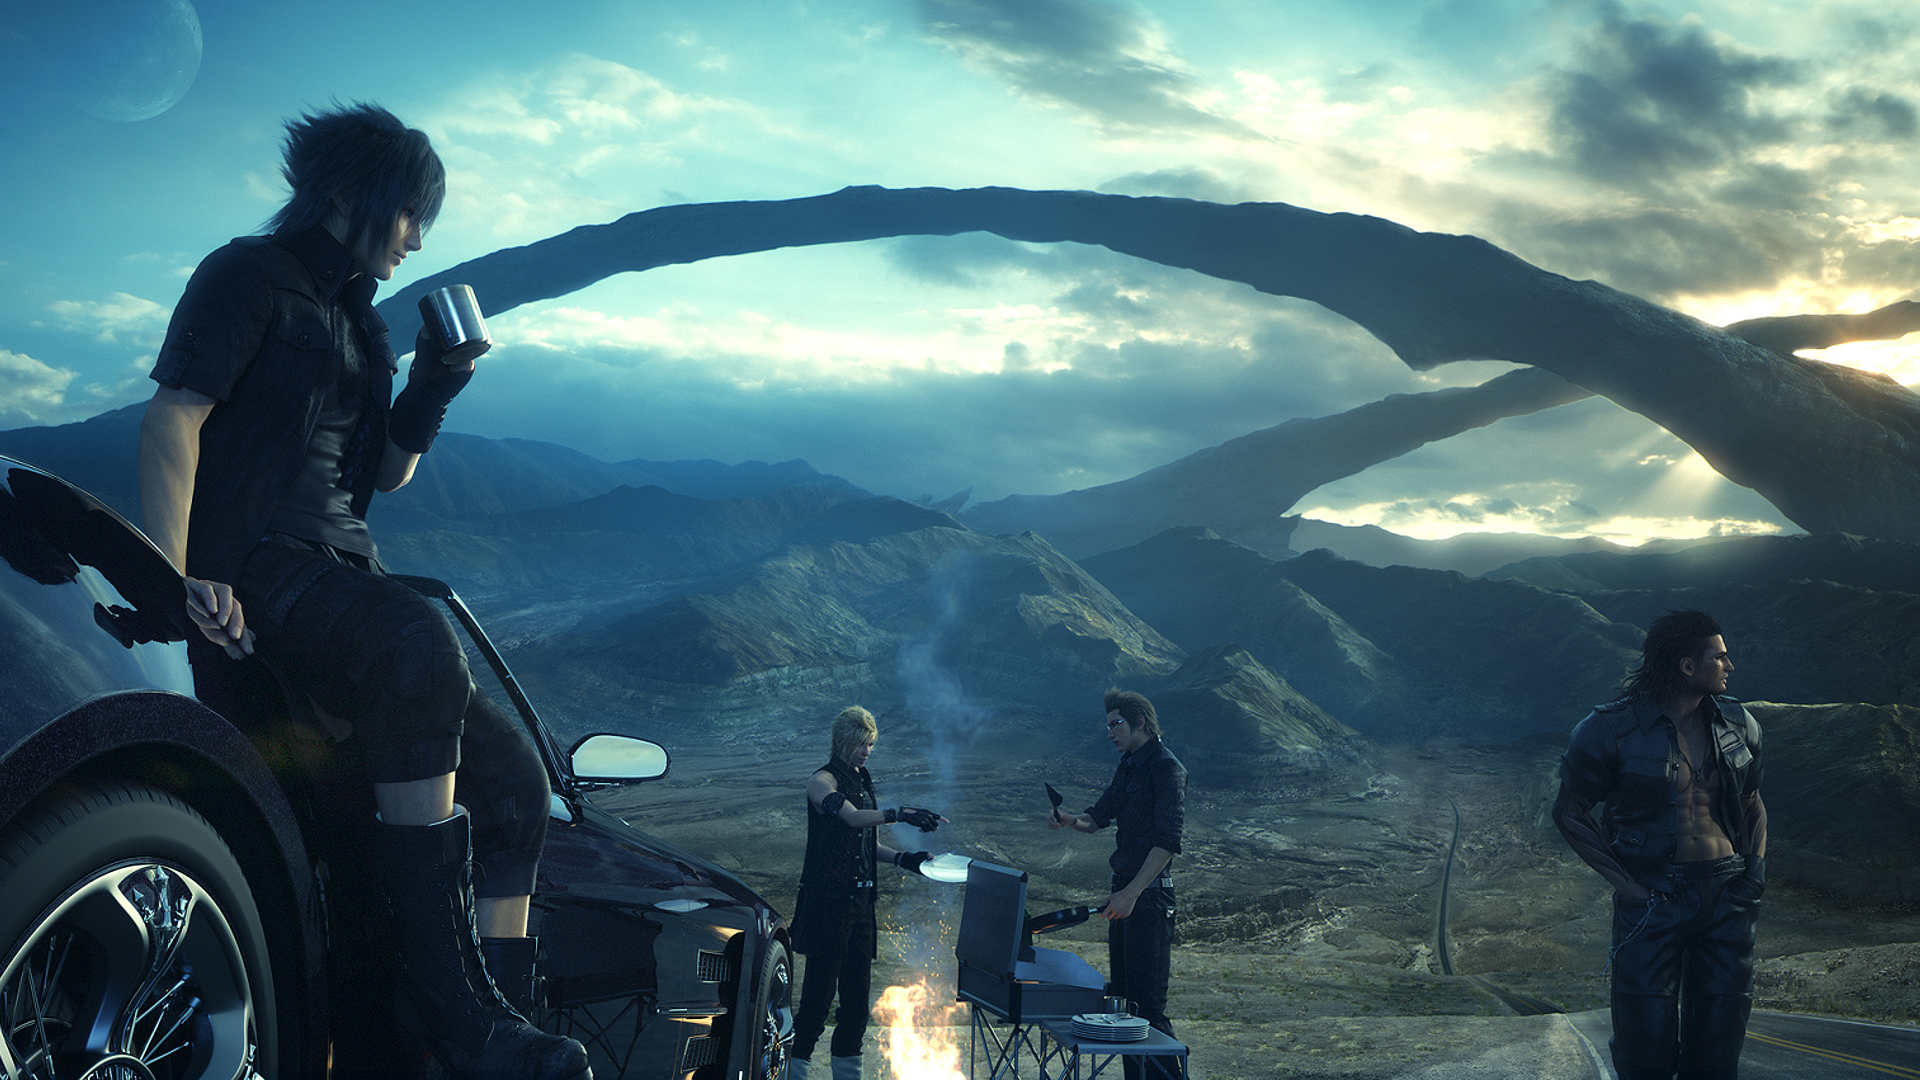 Final Fantasy Xv Wallpapers In Ultra Hd: Finalfantasyxv2wallpaper